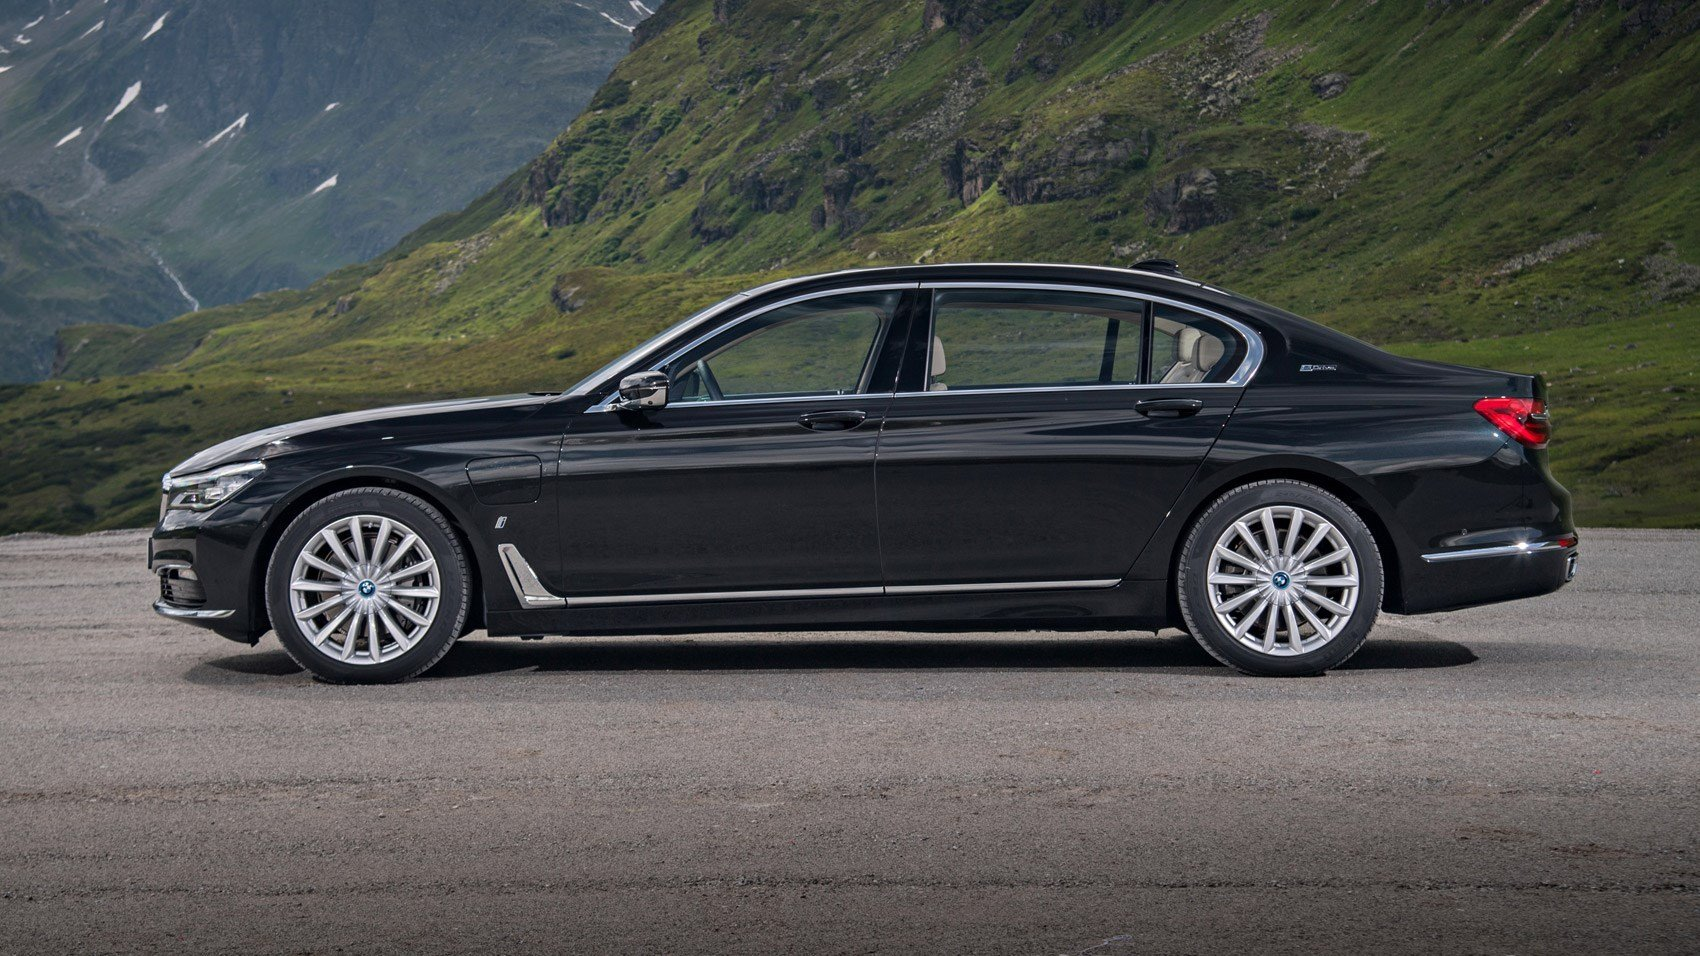 Latest Bmw 7 Series 740Le Xdrive Iperformance 2016 Review Car Free Download